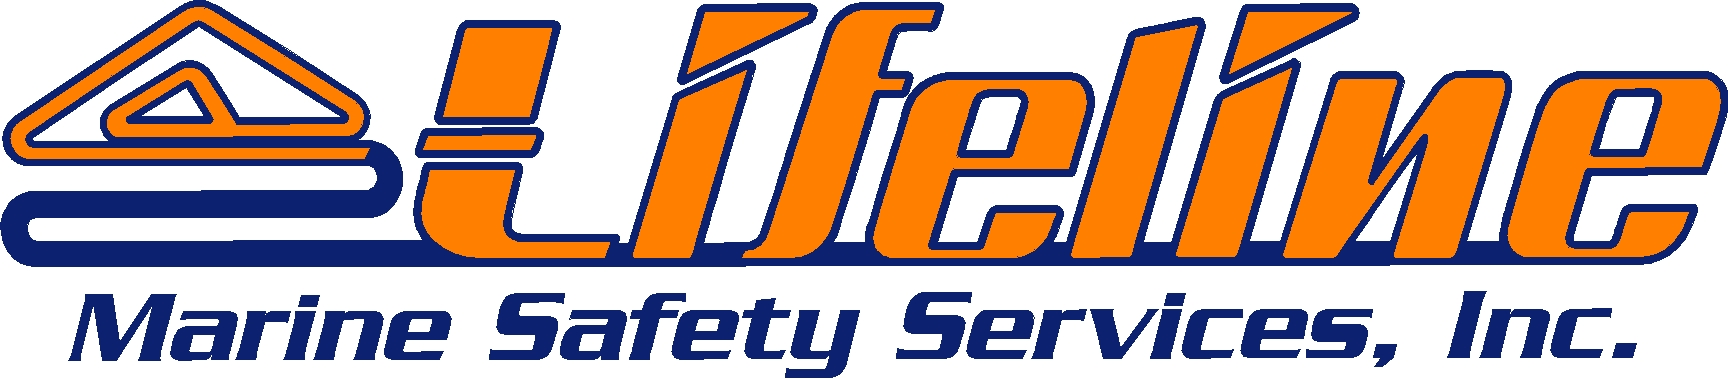 Lifeline Marine Safety Equipment